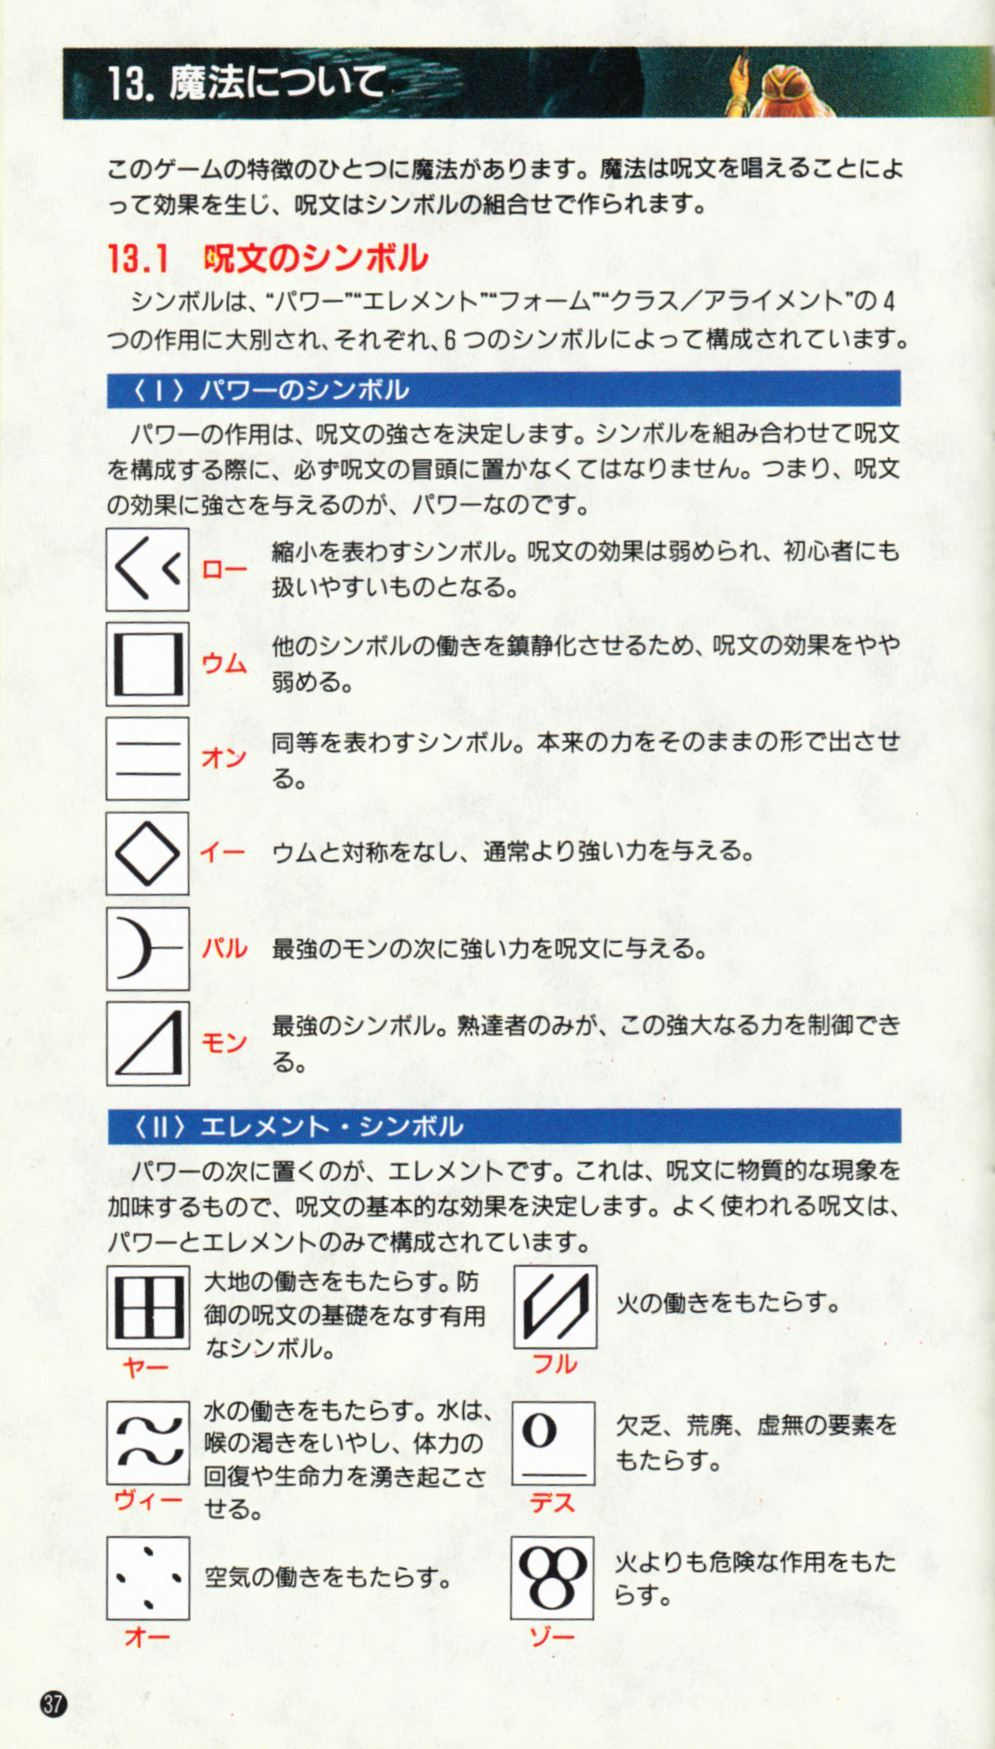 Game - Dungeon Master - JP - Super Famicom - Manual - Page 040 - Scan